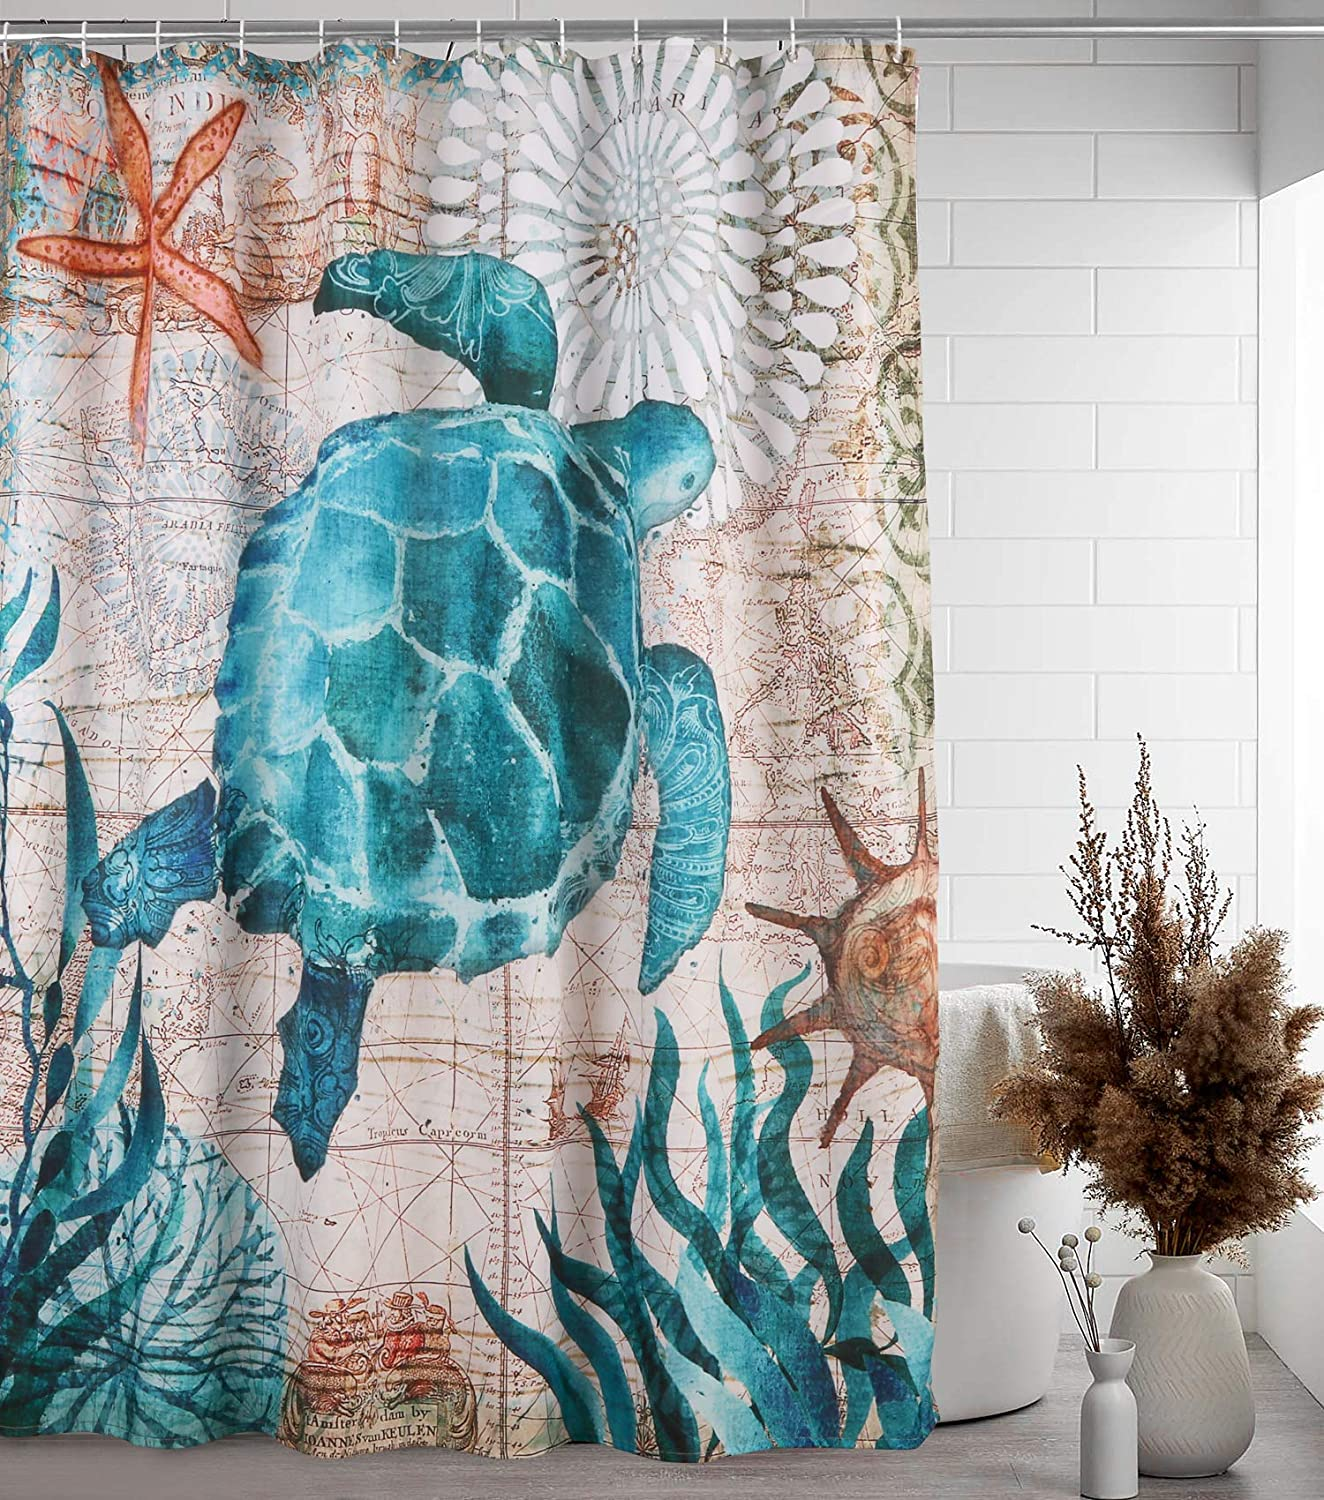 Uphome Fabric Shower Curtain Naut Sets Turtle overseas Sea Sale Special Price